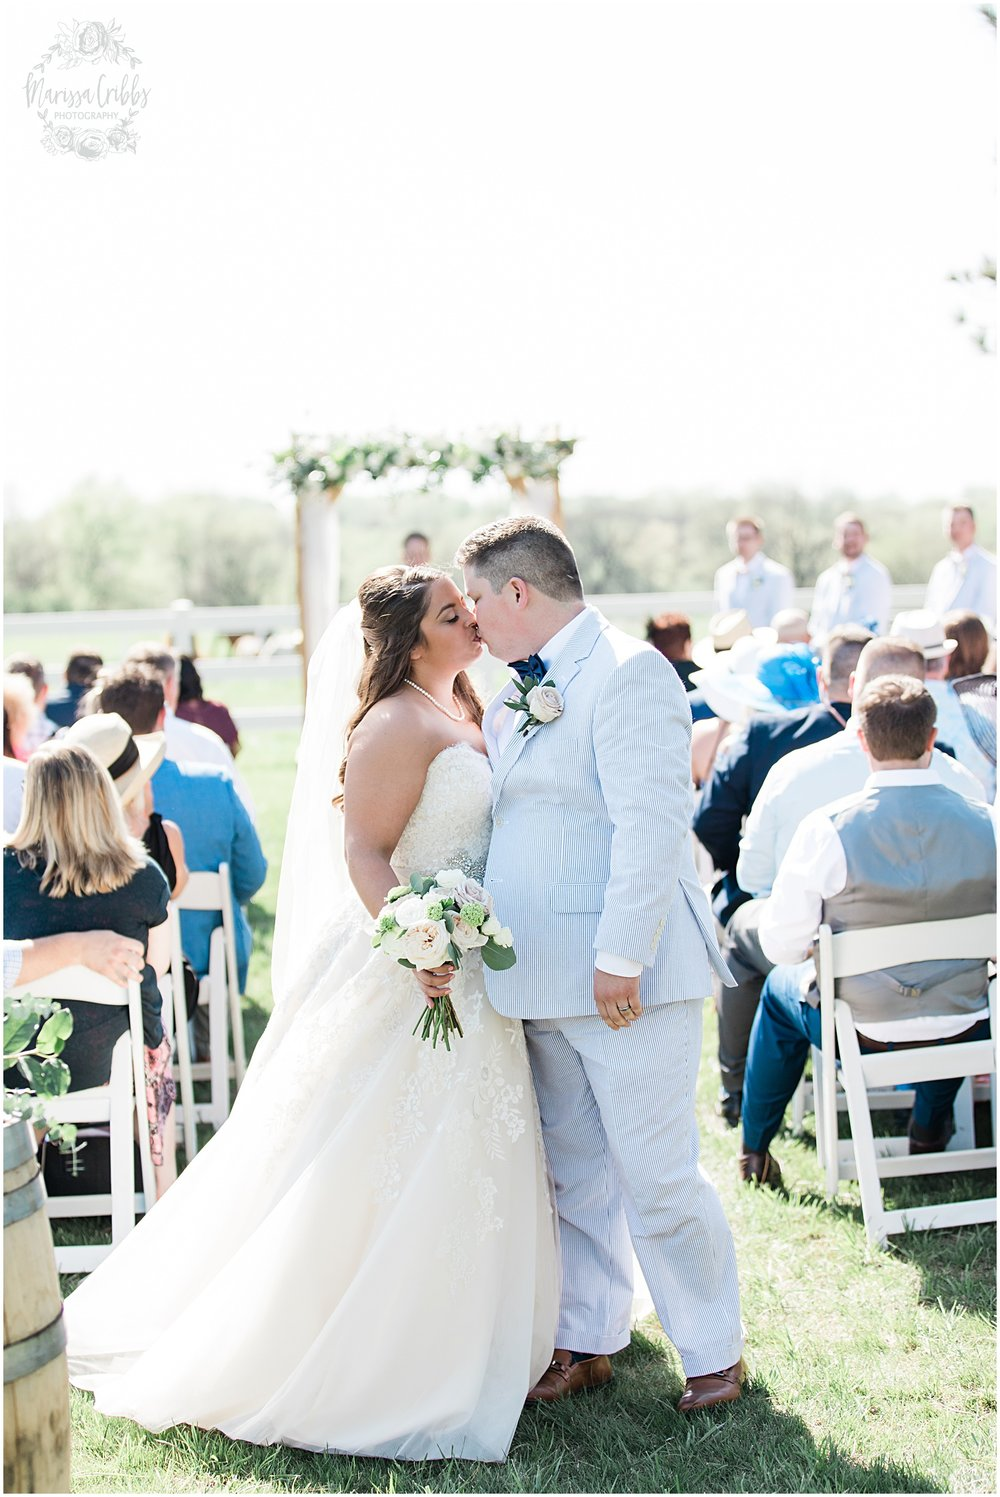 ANDREA & MICHAEL WEDDING | HICKORY CREEK RANCH | MARISSA CRIBBS PHOTOGRAPHY_4876.jpg